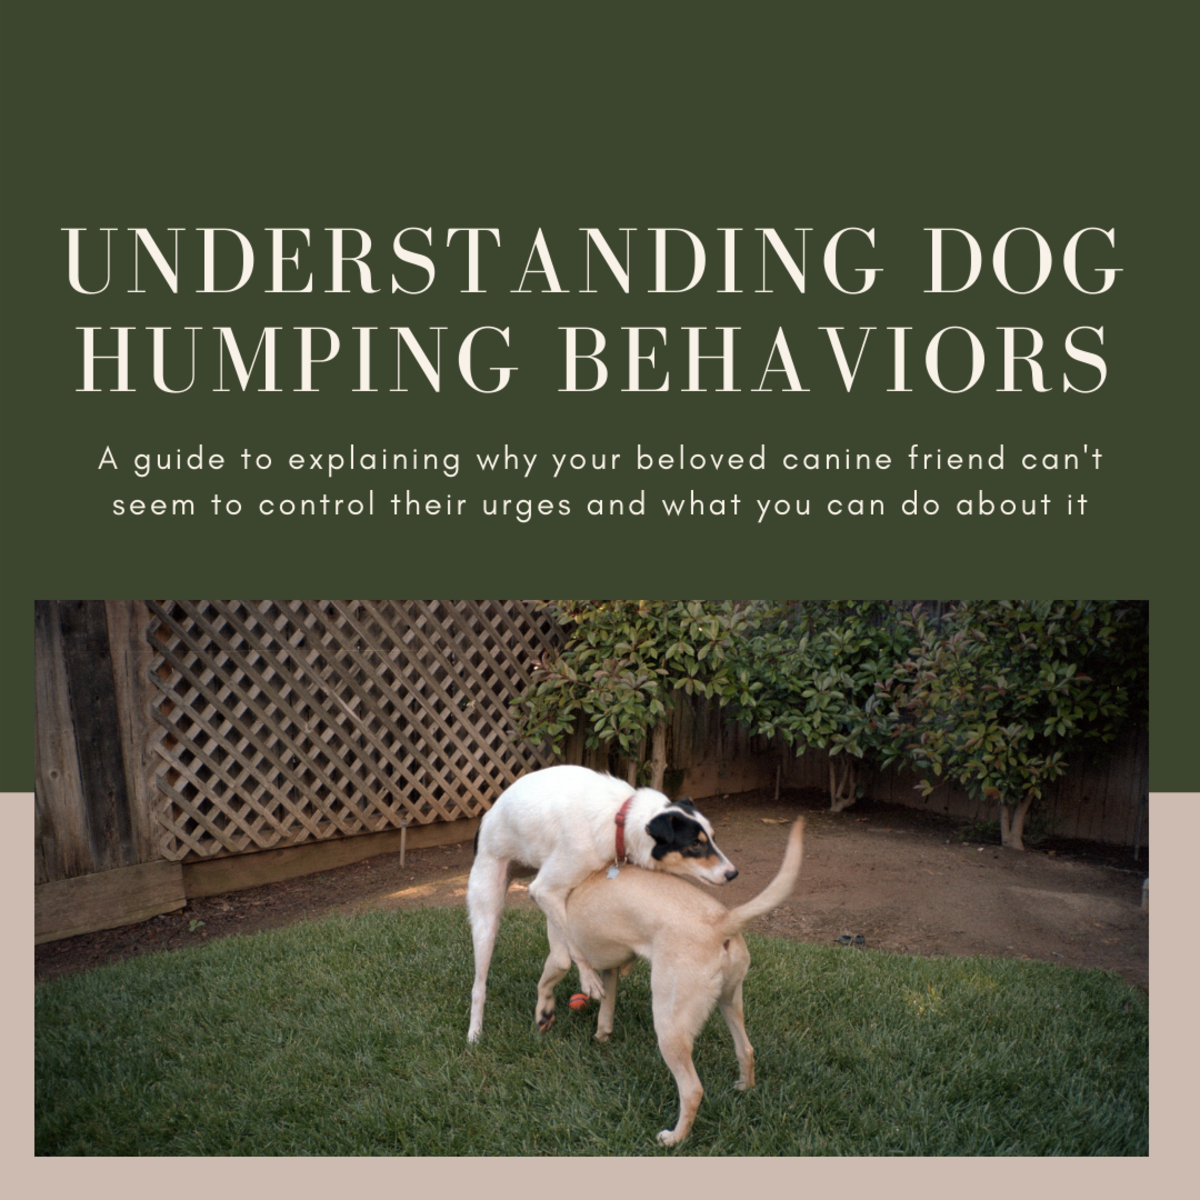 This guide will help you get a better understanding of why your dog may be repeatedly humping other dogs and what you can do about it.